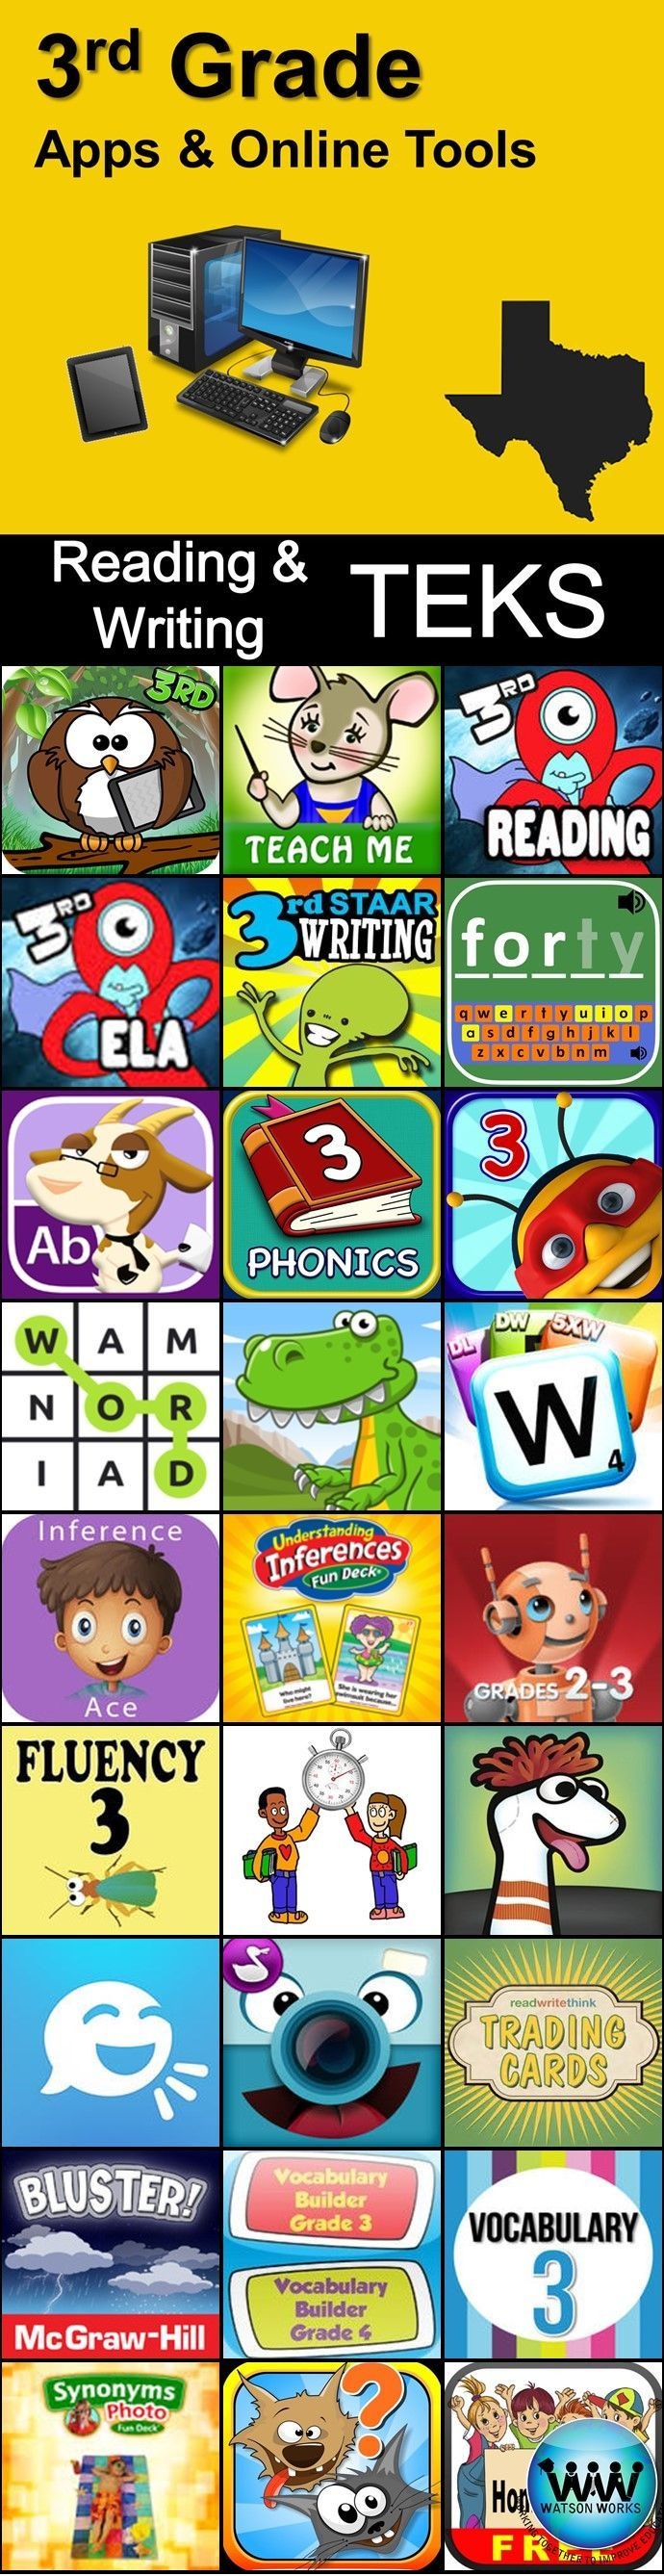 Check Out This Extensive List Of 3rd Grade Reading Writing Ipad Apps Online Tools Broken Down For Every Teks Tex 3rd Grade Reading Reading Writing Reading Reading comprehension grade apps